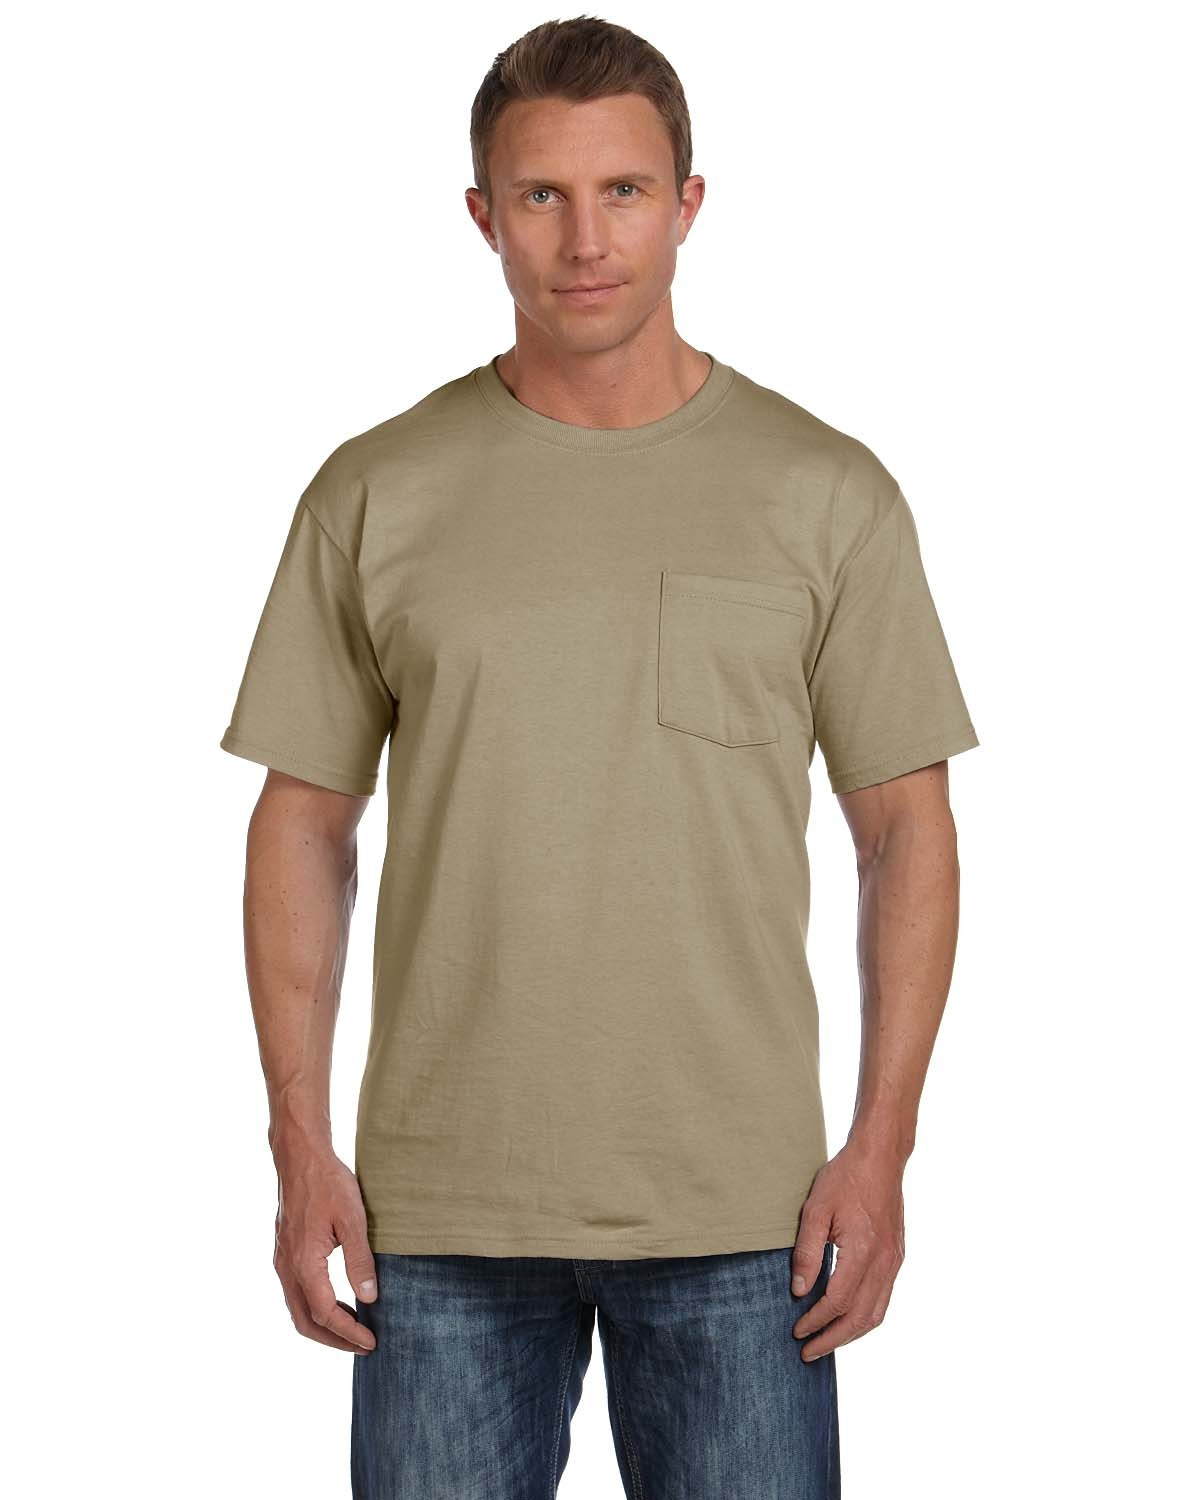 3931P Fruit of the Loom KHAKI